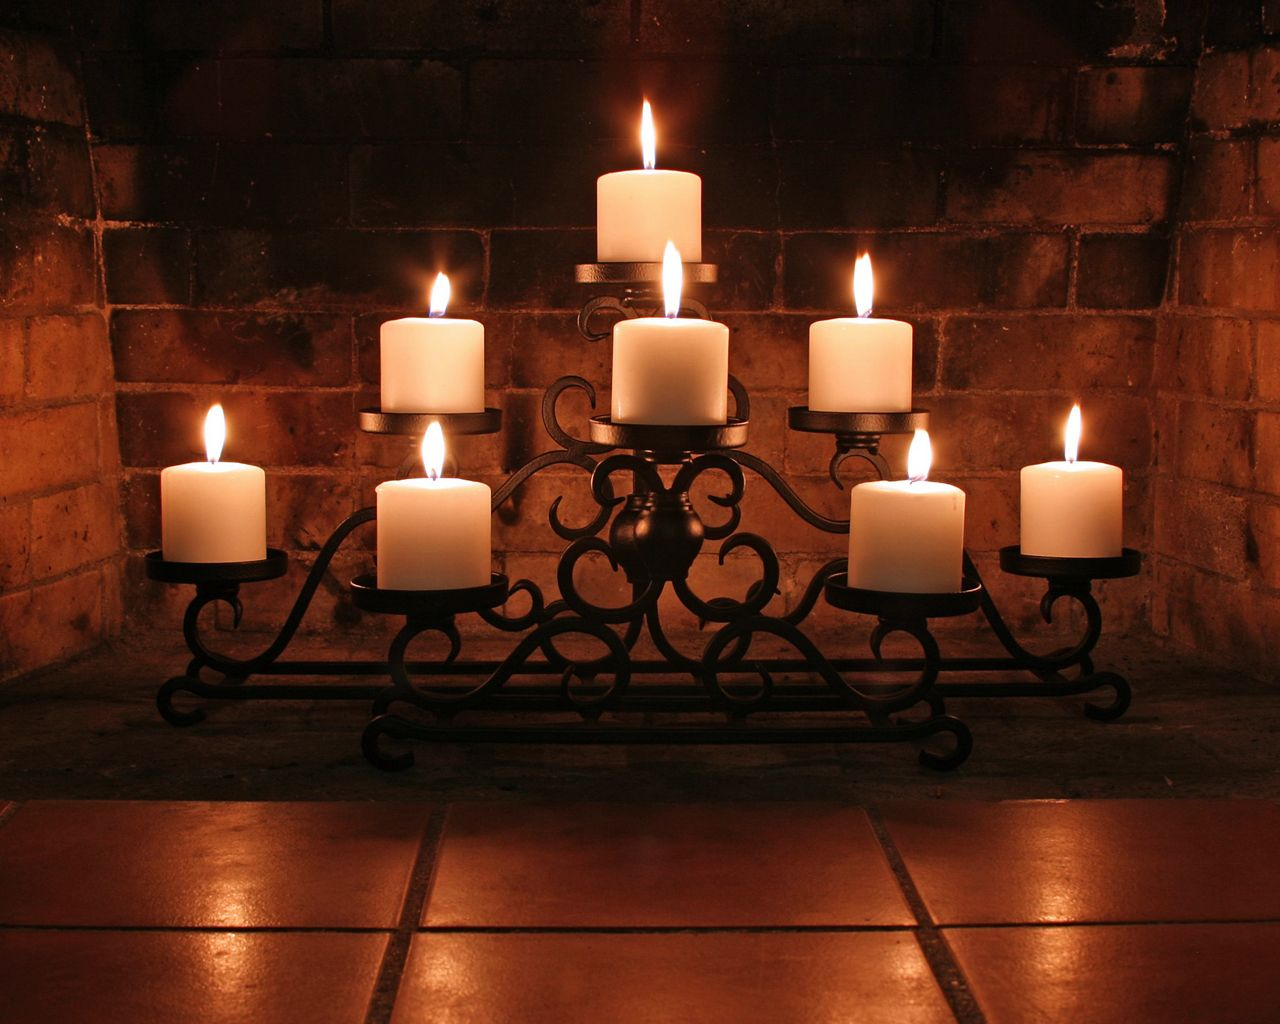 Hd Wallpapers 8 Candles